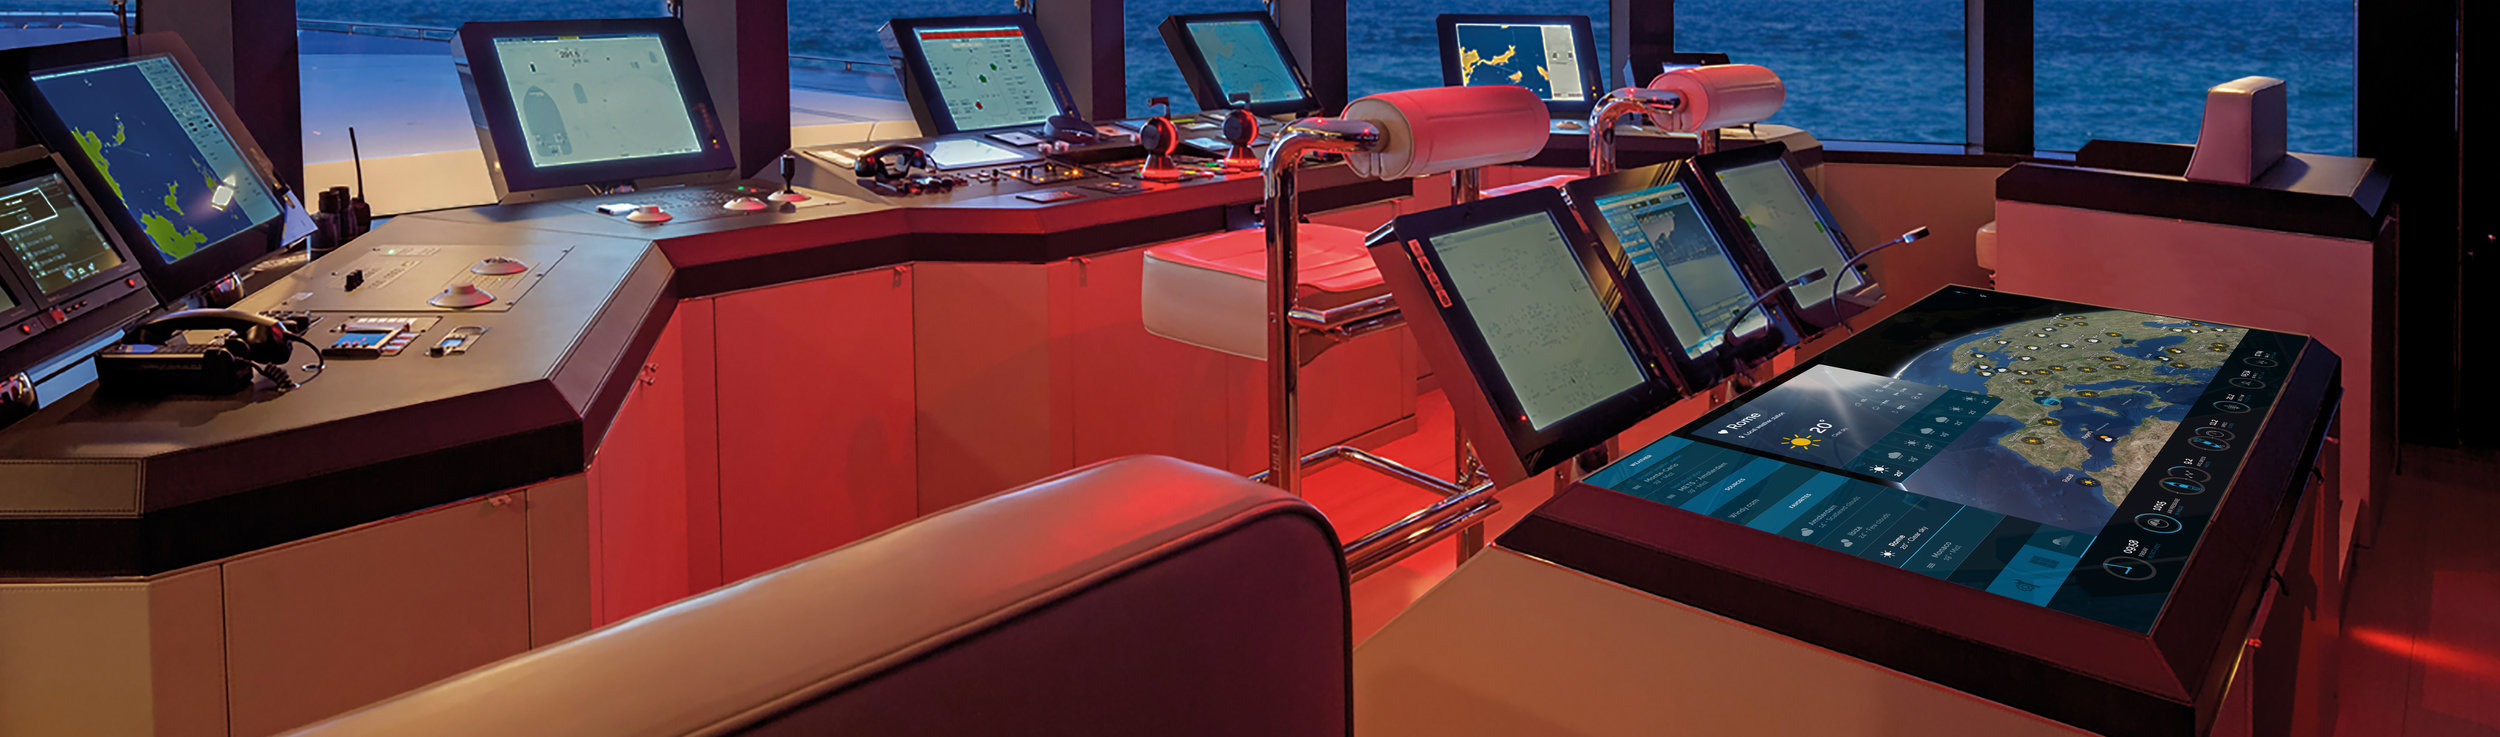 Touchscreen integration Bridge with realtime Yacht information